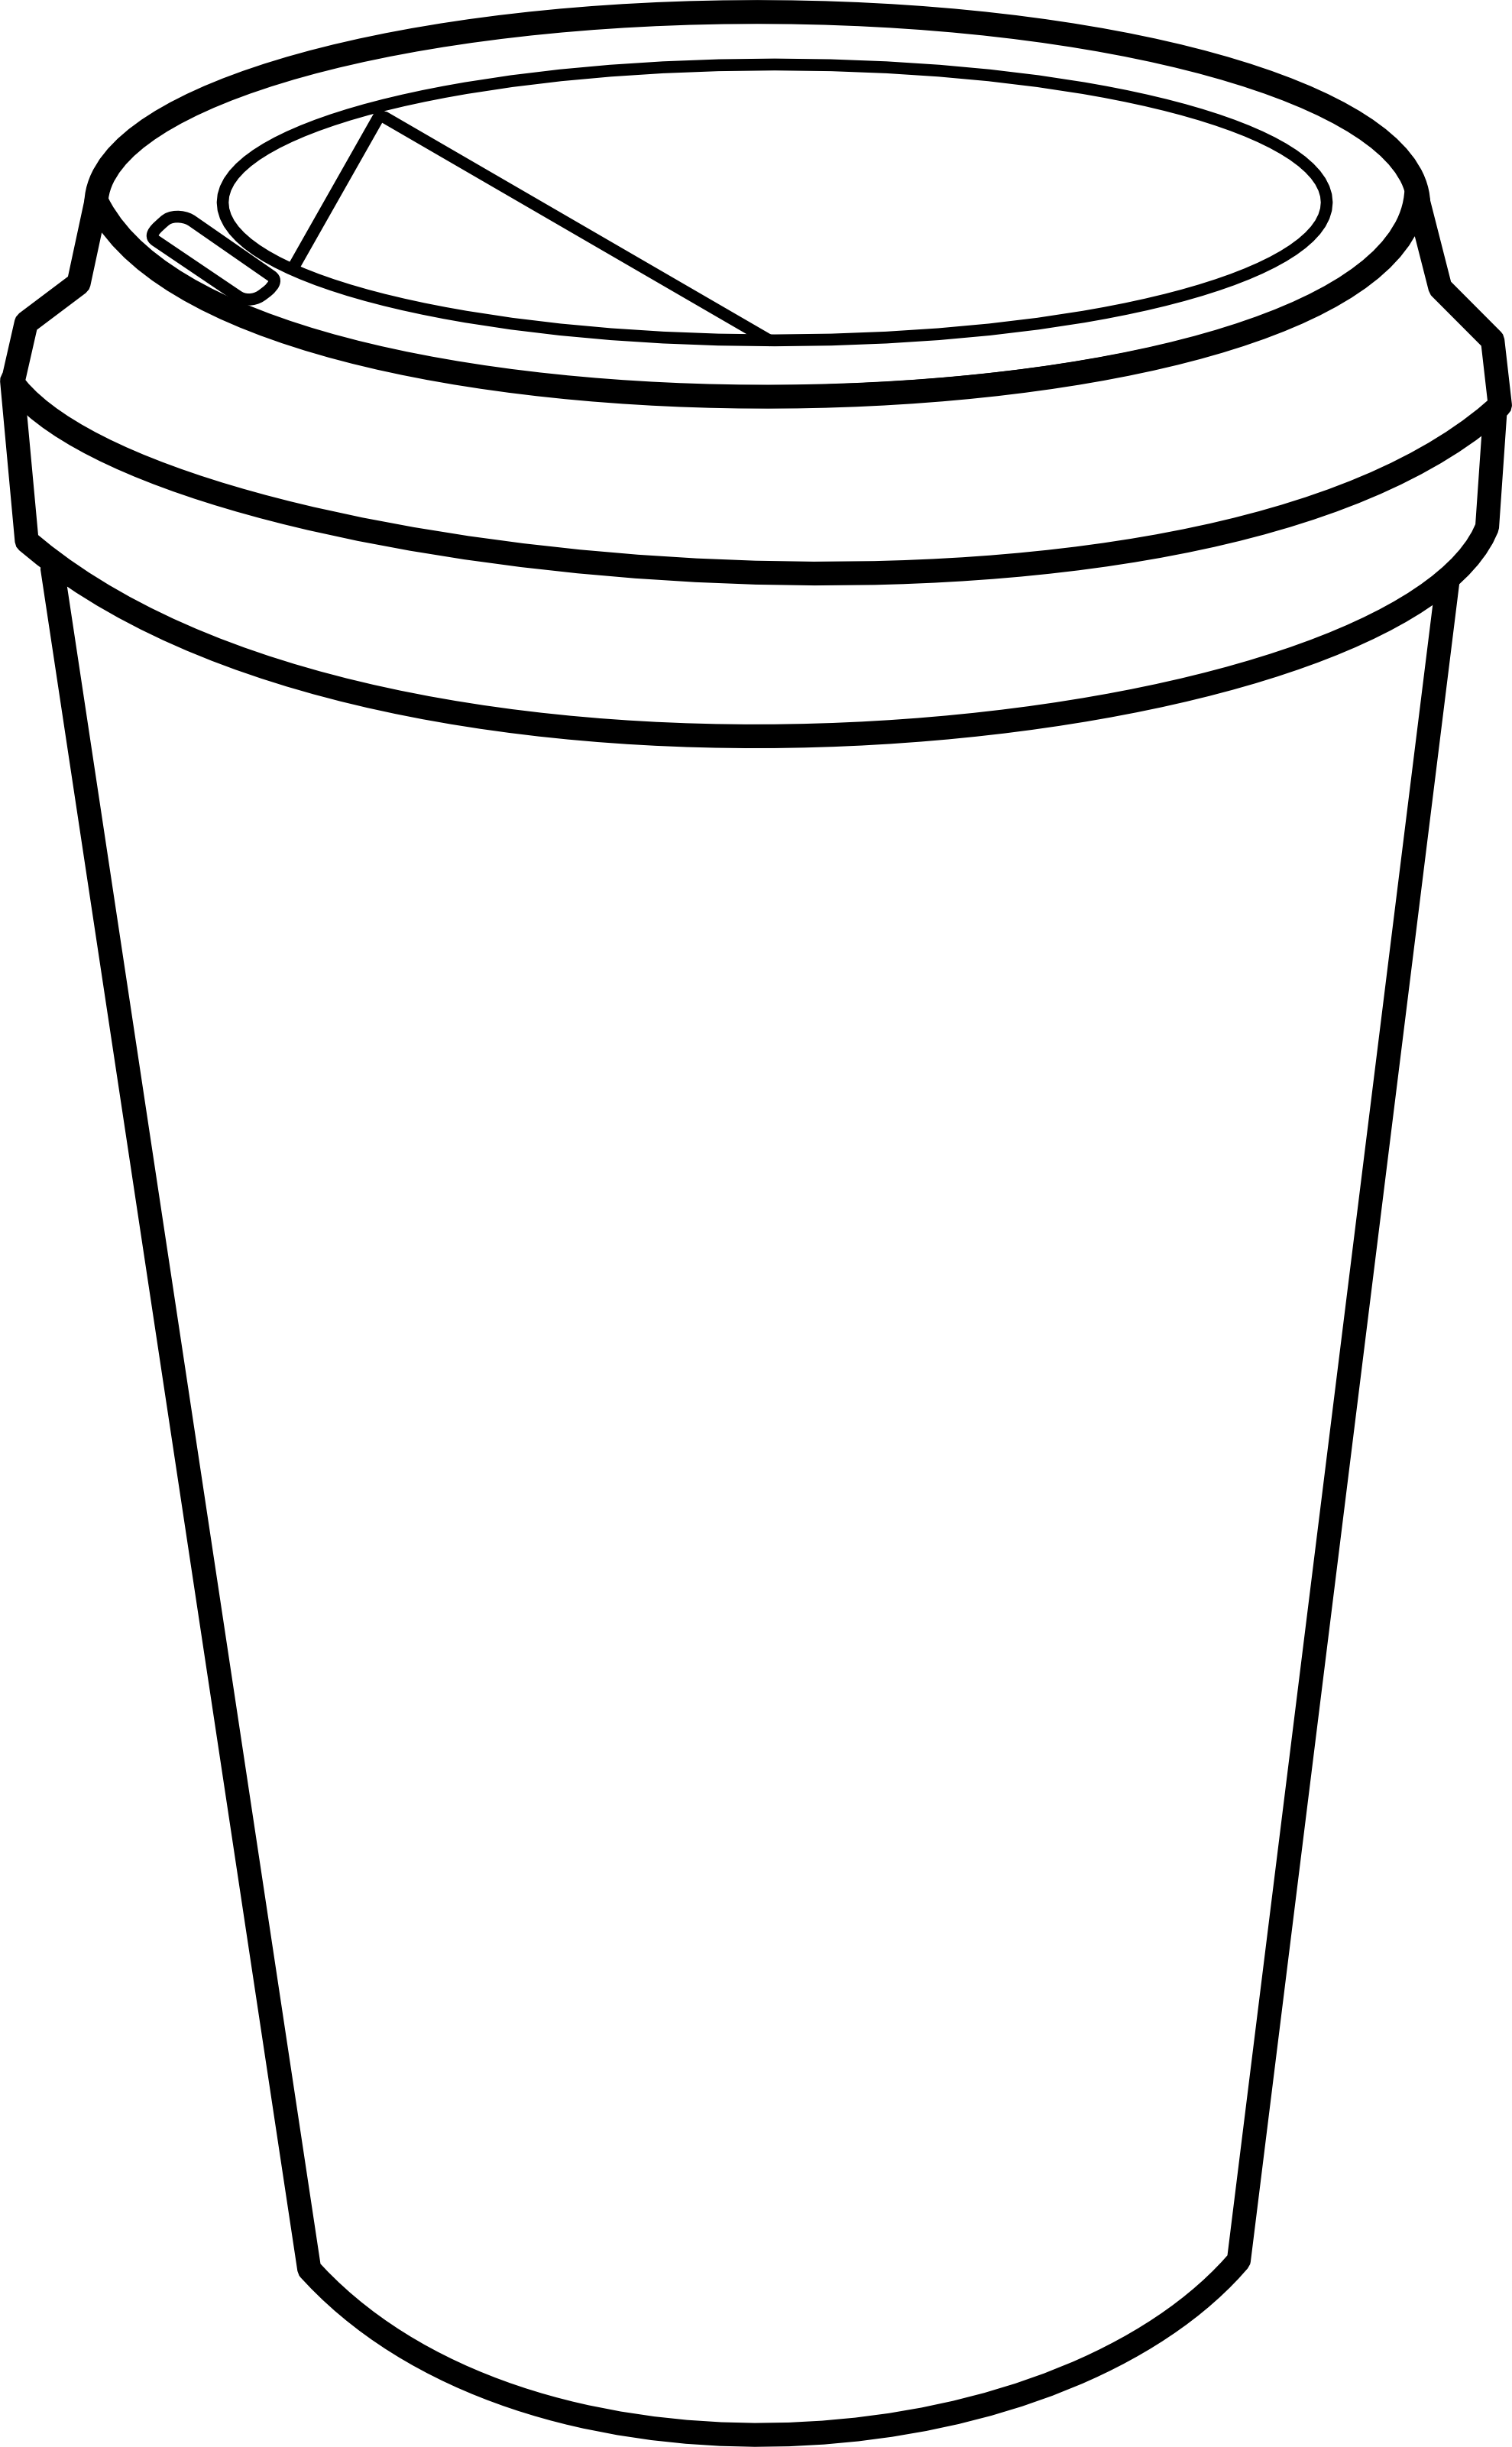 Mug bucket pencil and. Cup clipart disposable cup